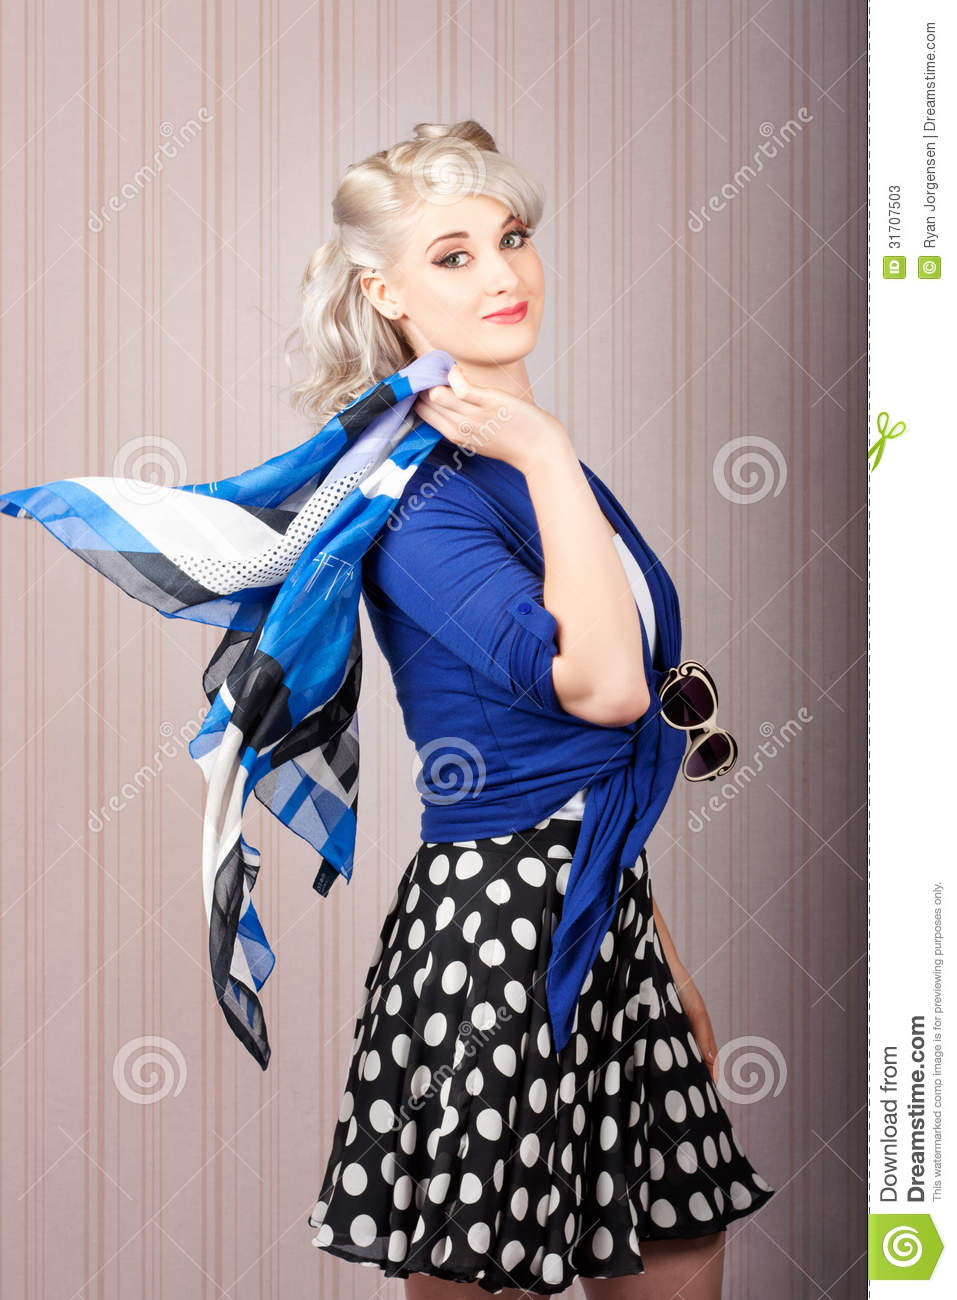 American Style Pin Up Girl Vintage Background Stock Photos Image 31707503